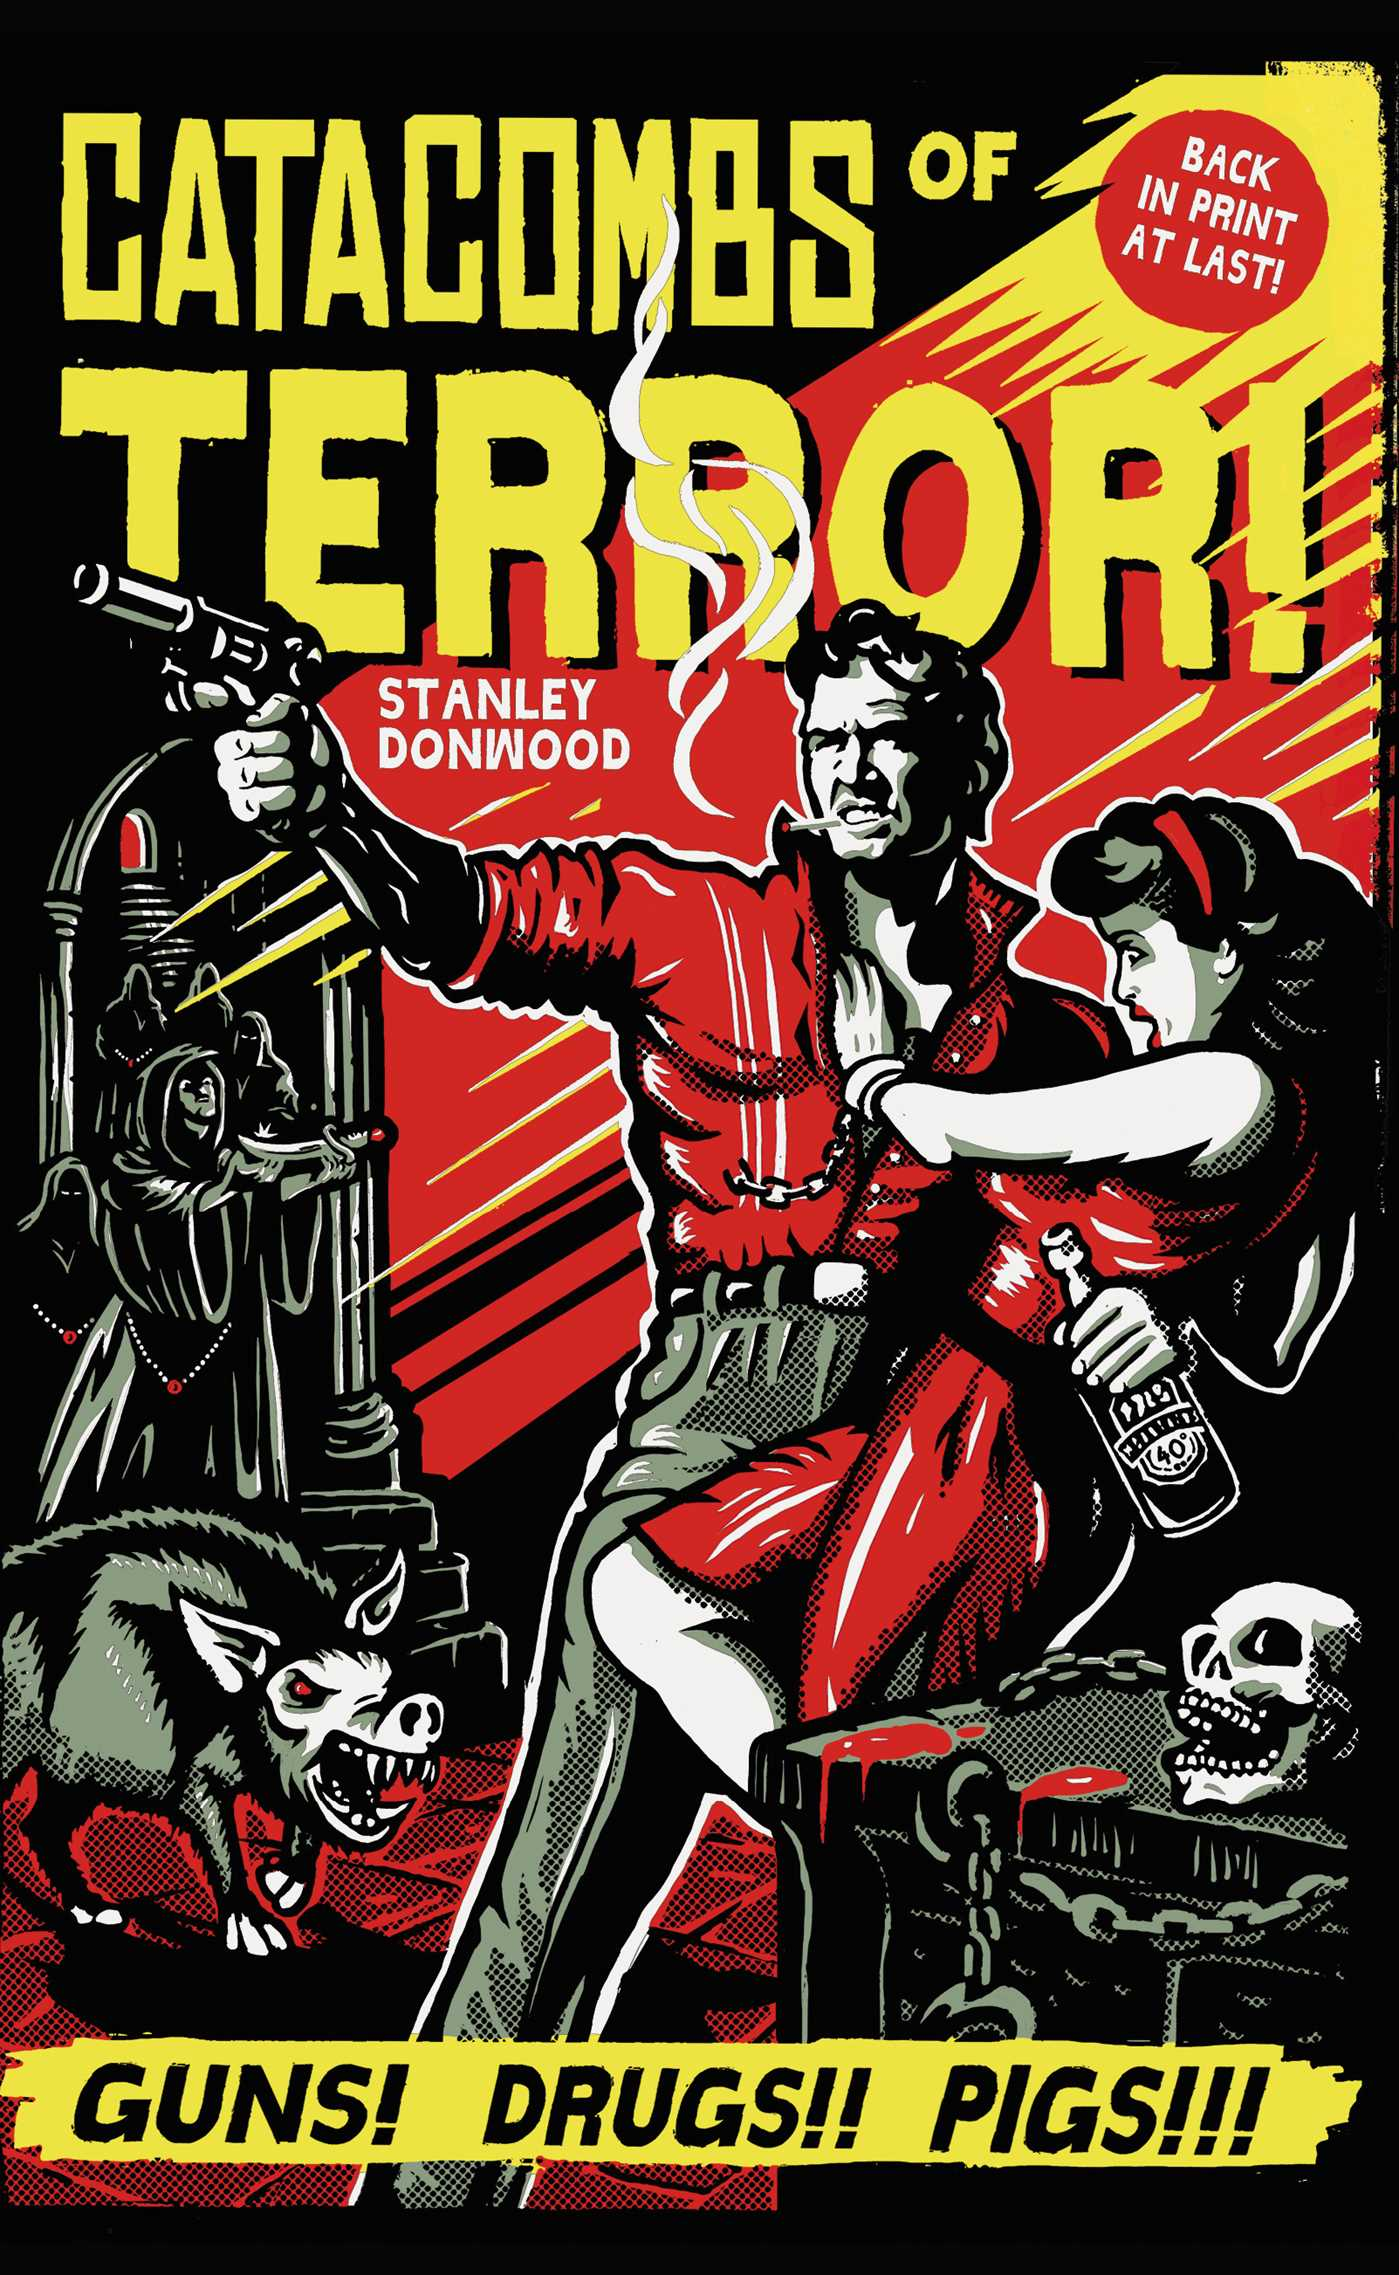 Catacombs of terror 9781440596698 hr